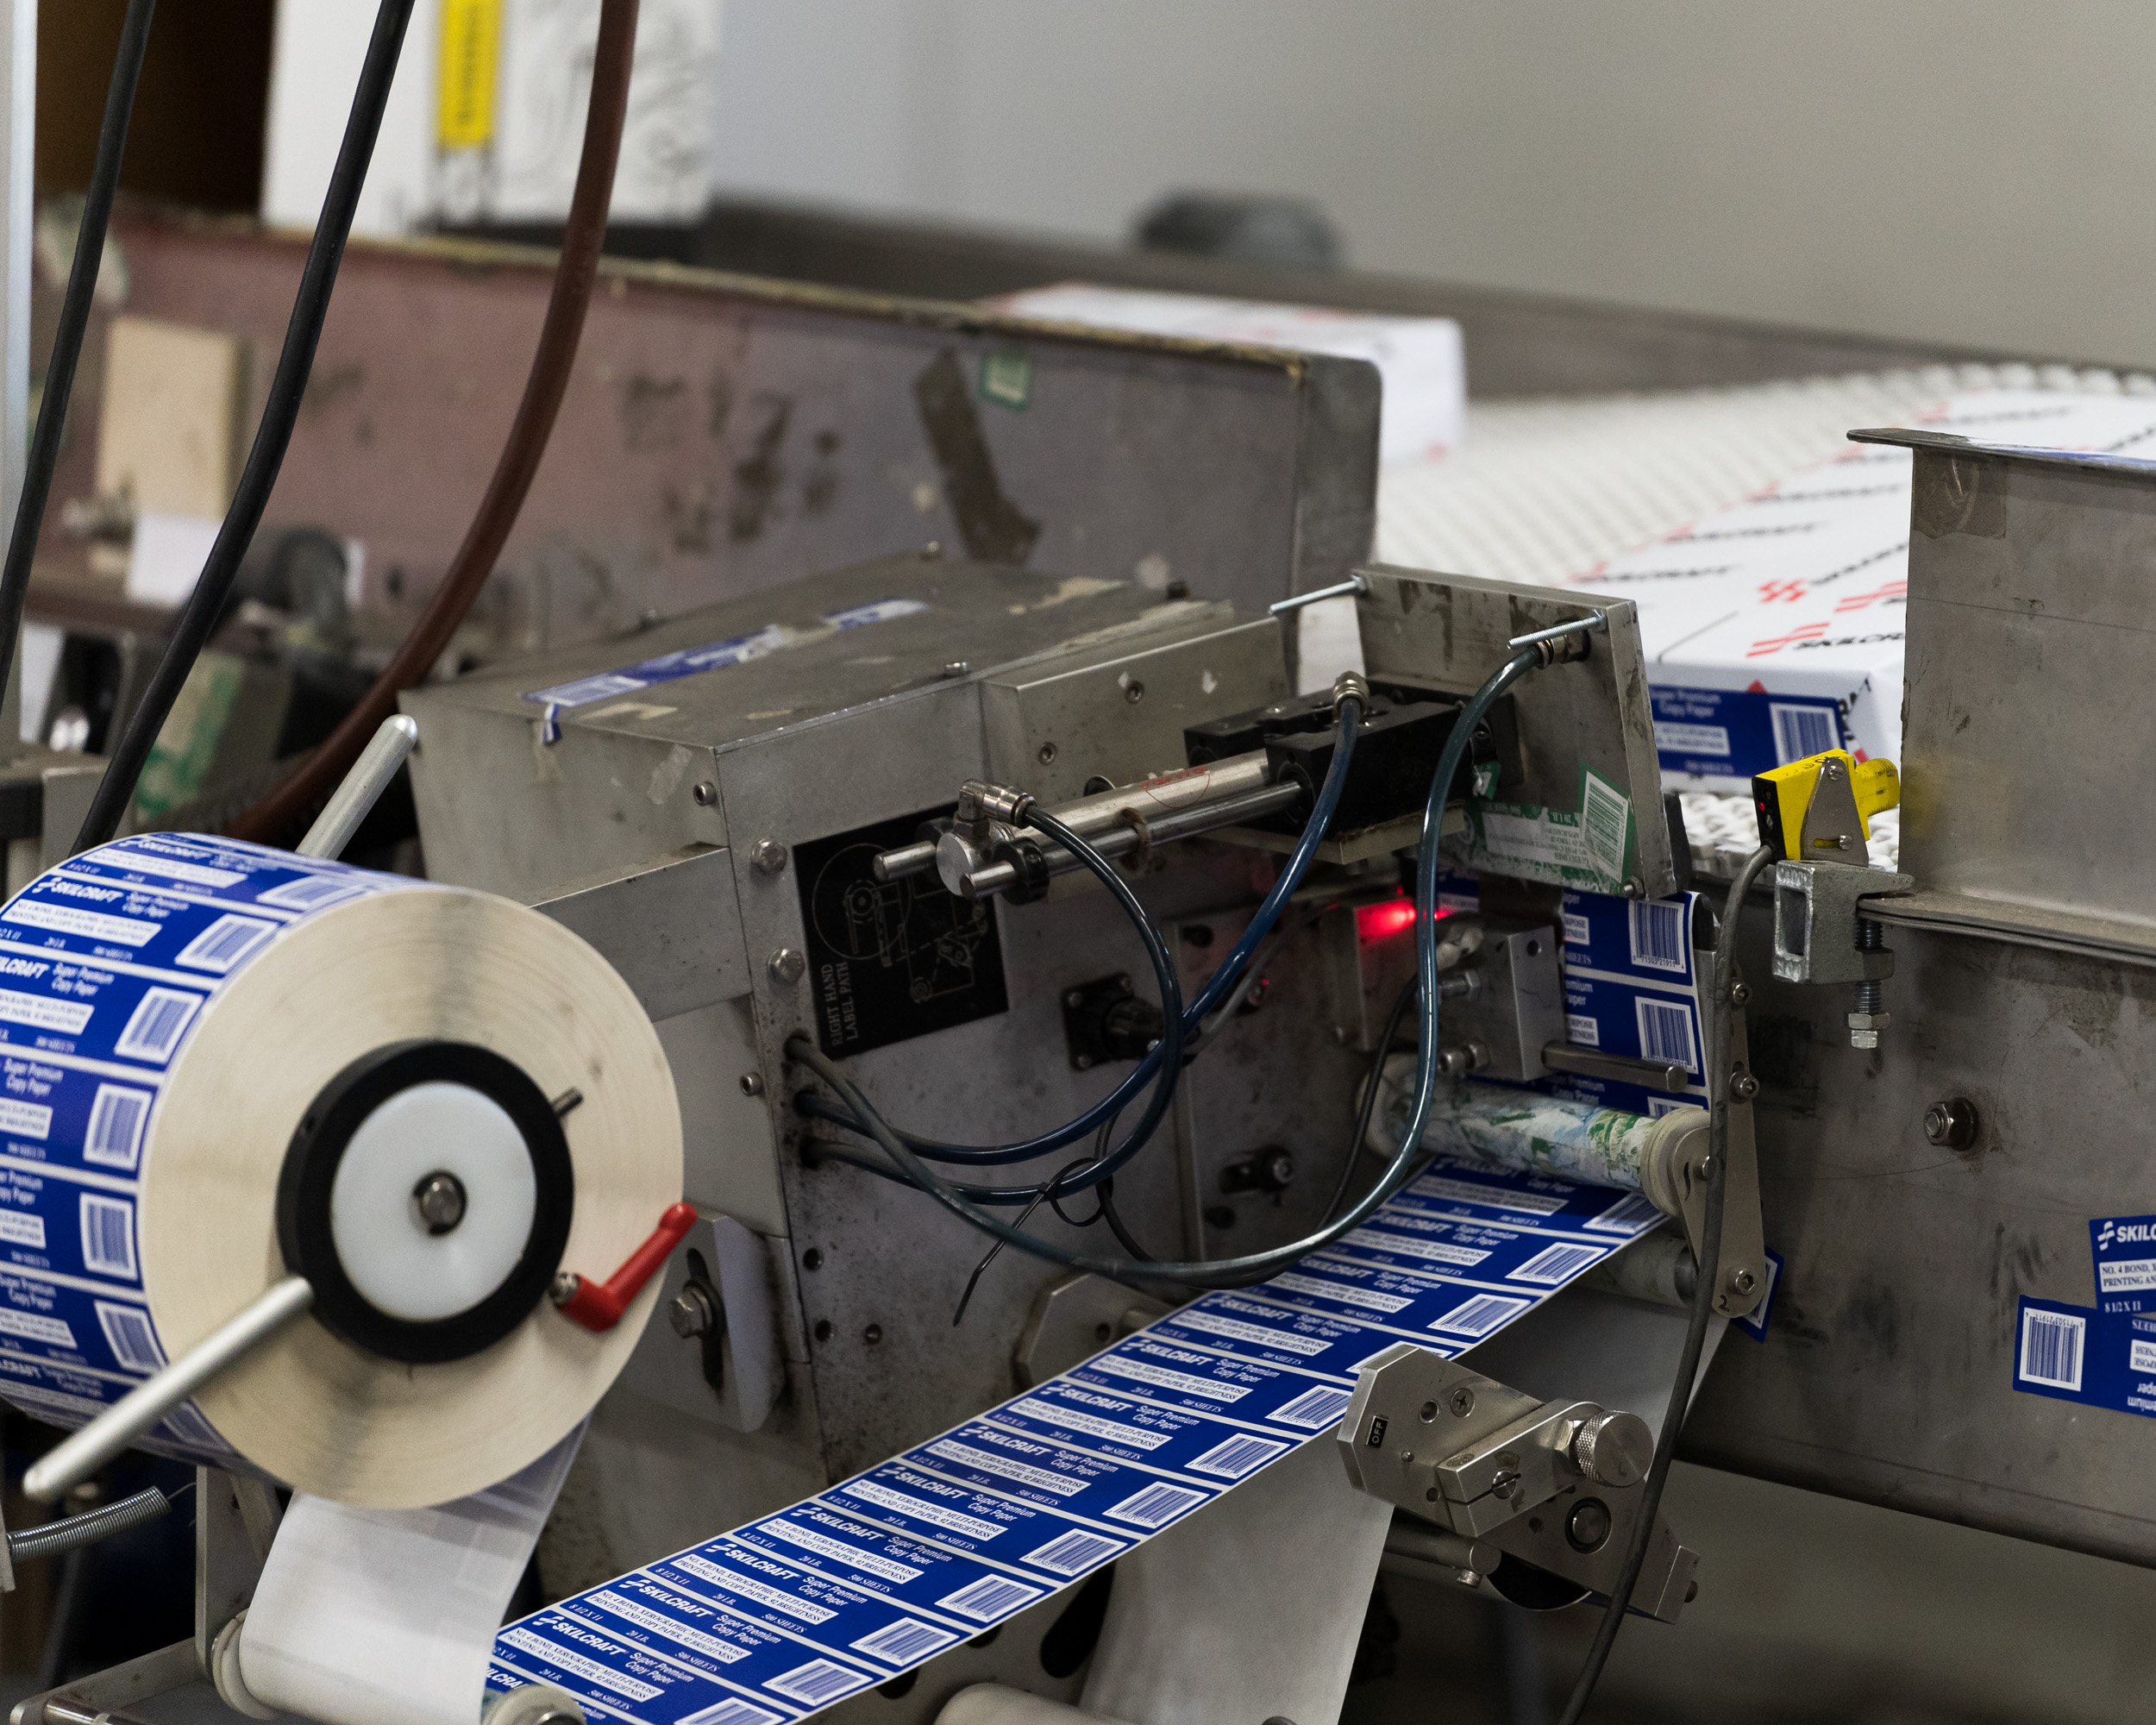 A machine stickers stacks of paper